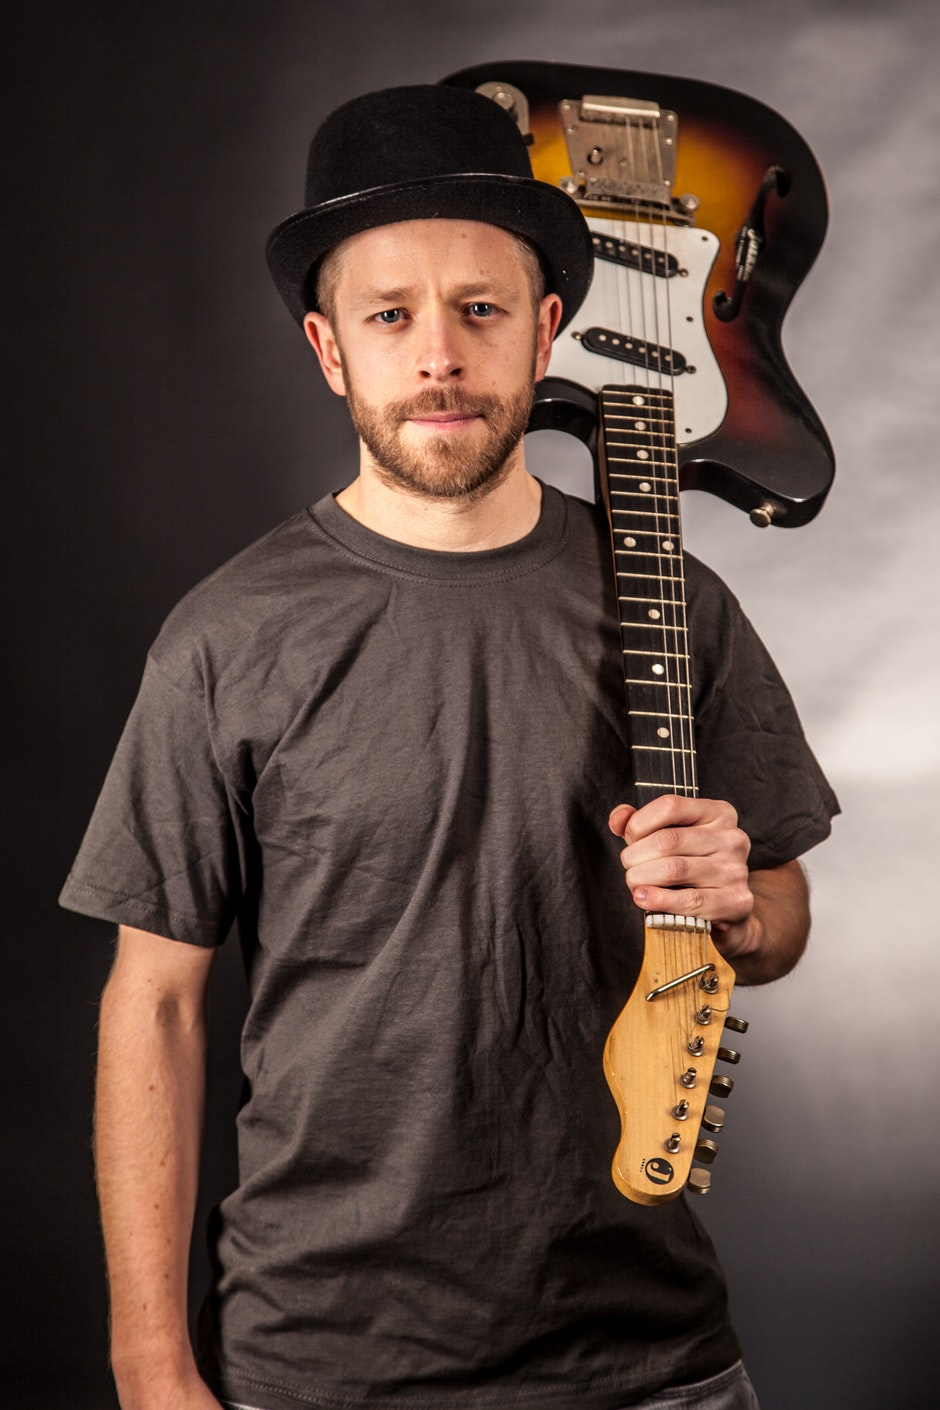 Man in Black T Shirt Holding Electric Guitar Upside Down